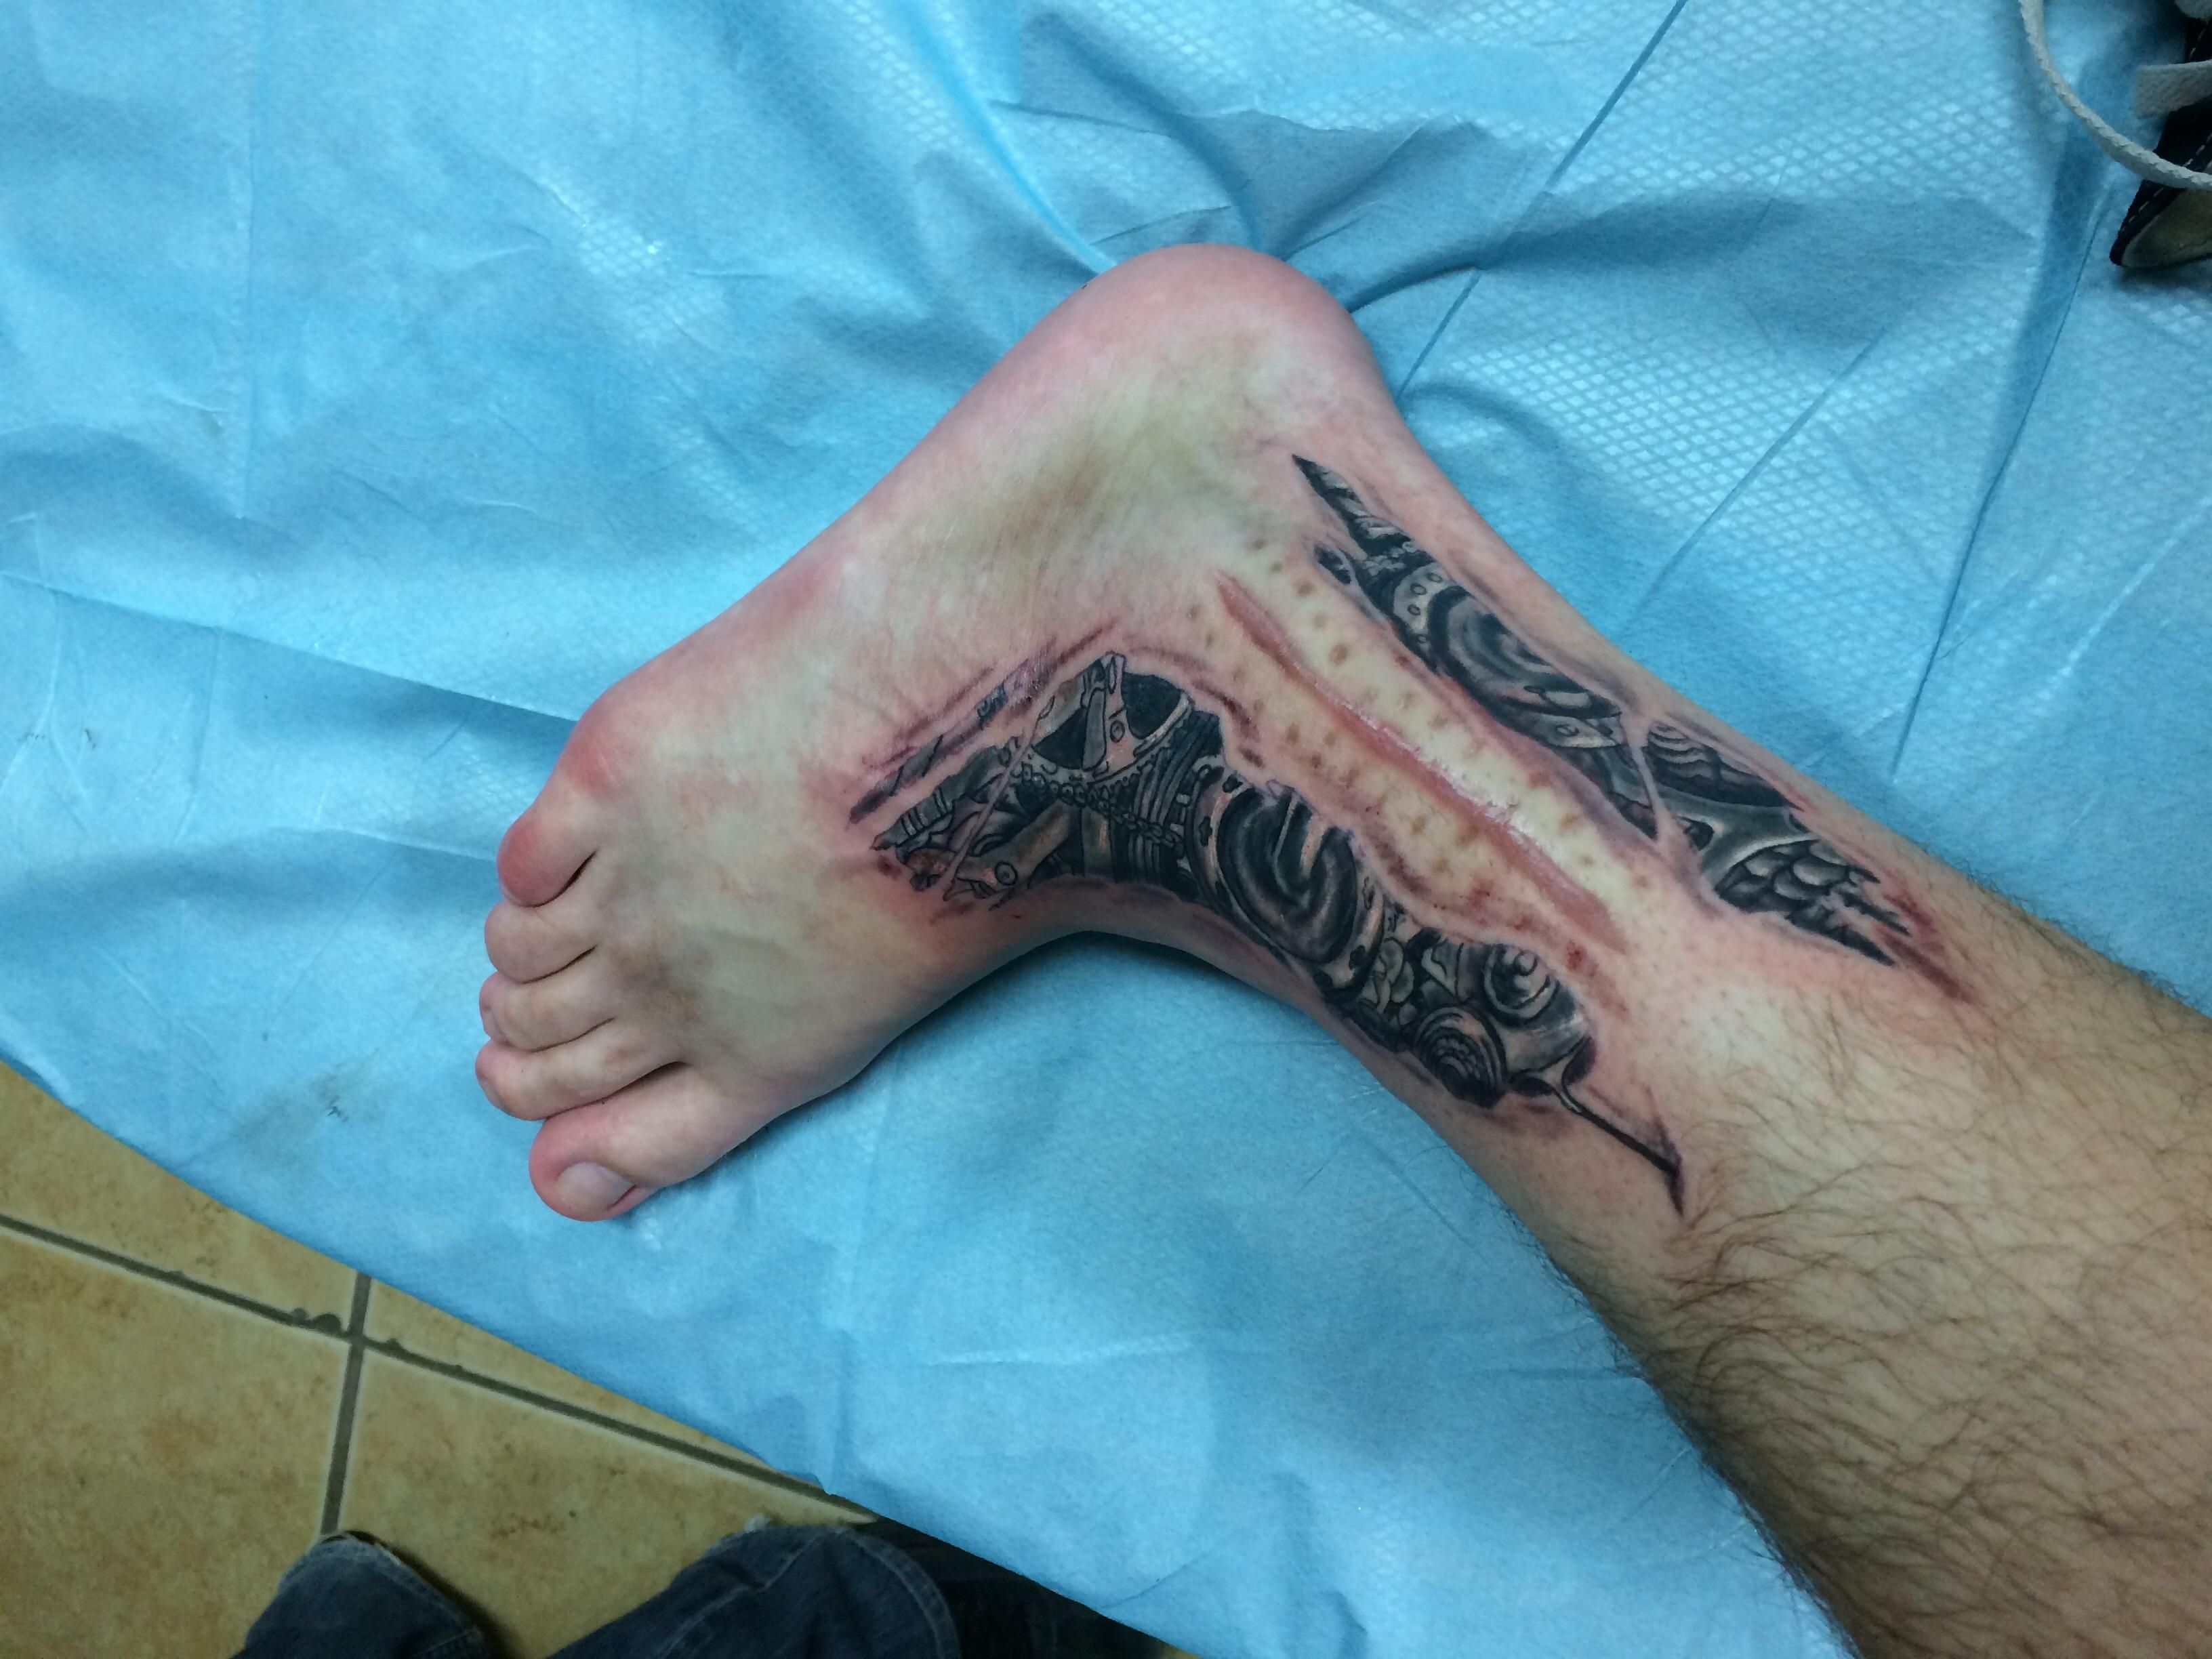 Tattoo I Got Done Around My Scar From Ankle Surgery Done By Joshua Kunkel At Ikonic Inc State College Pa Scar Tattoo Tattoo Over Scar Tattoos